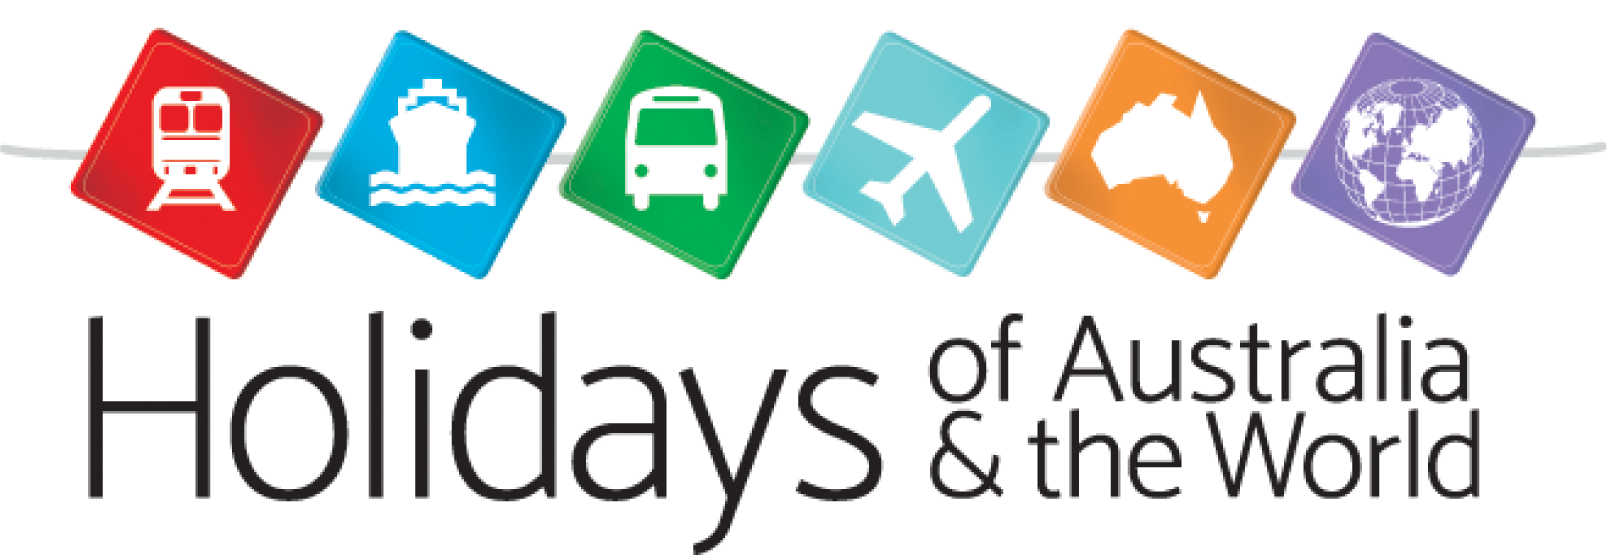 Holidays of Australia Pty Ltd Logo